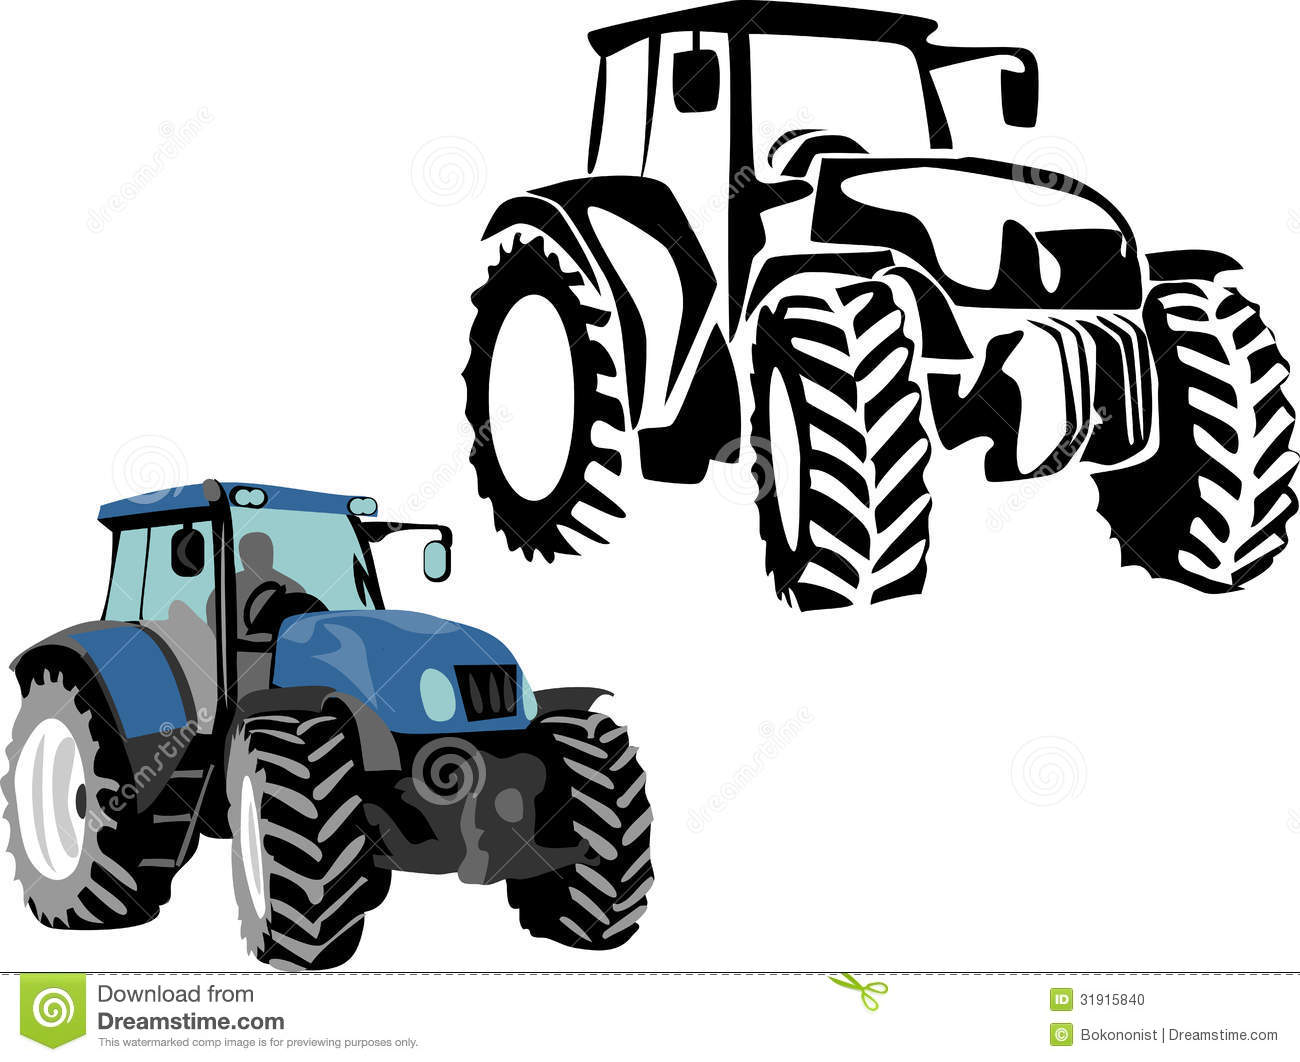 Clipart Tractor Tractor - stylized black and